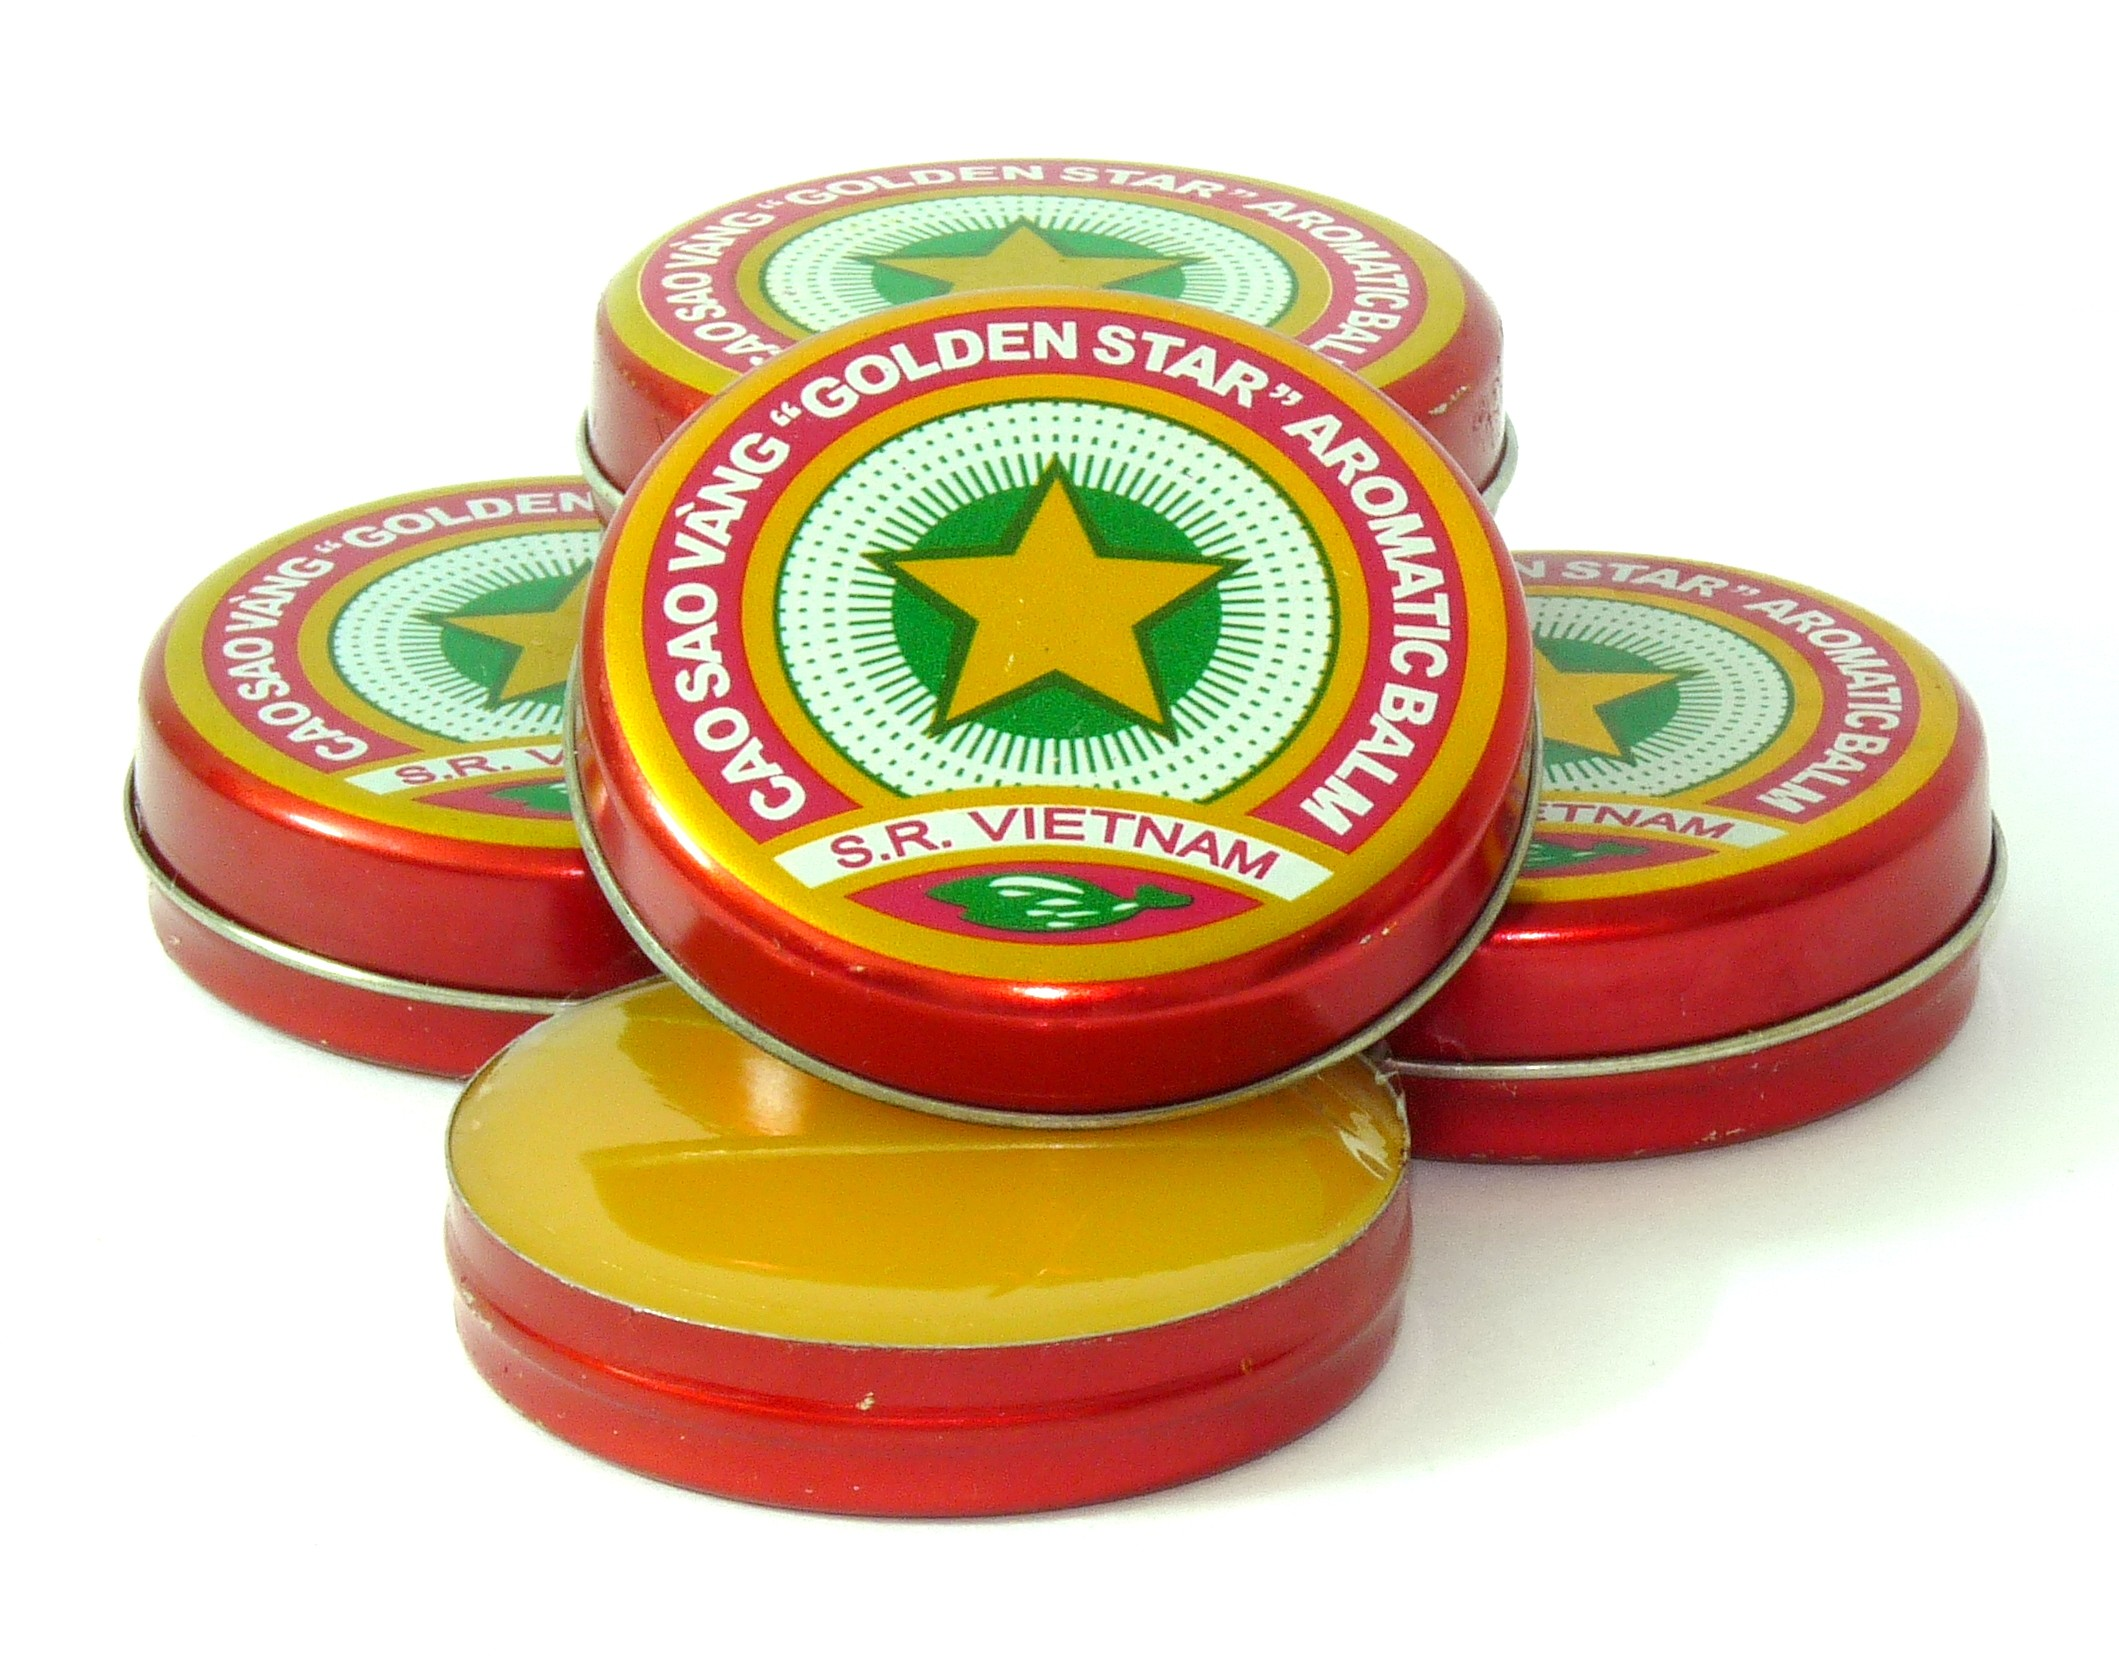 1 Box of 12 - Golden Star Balm